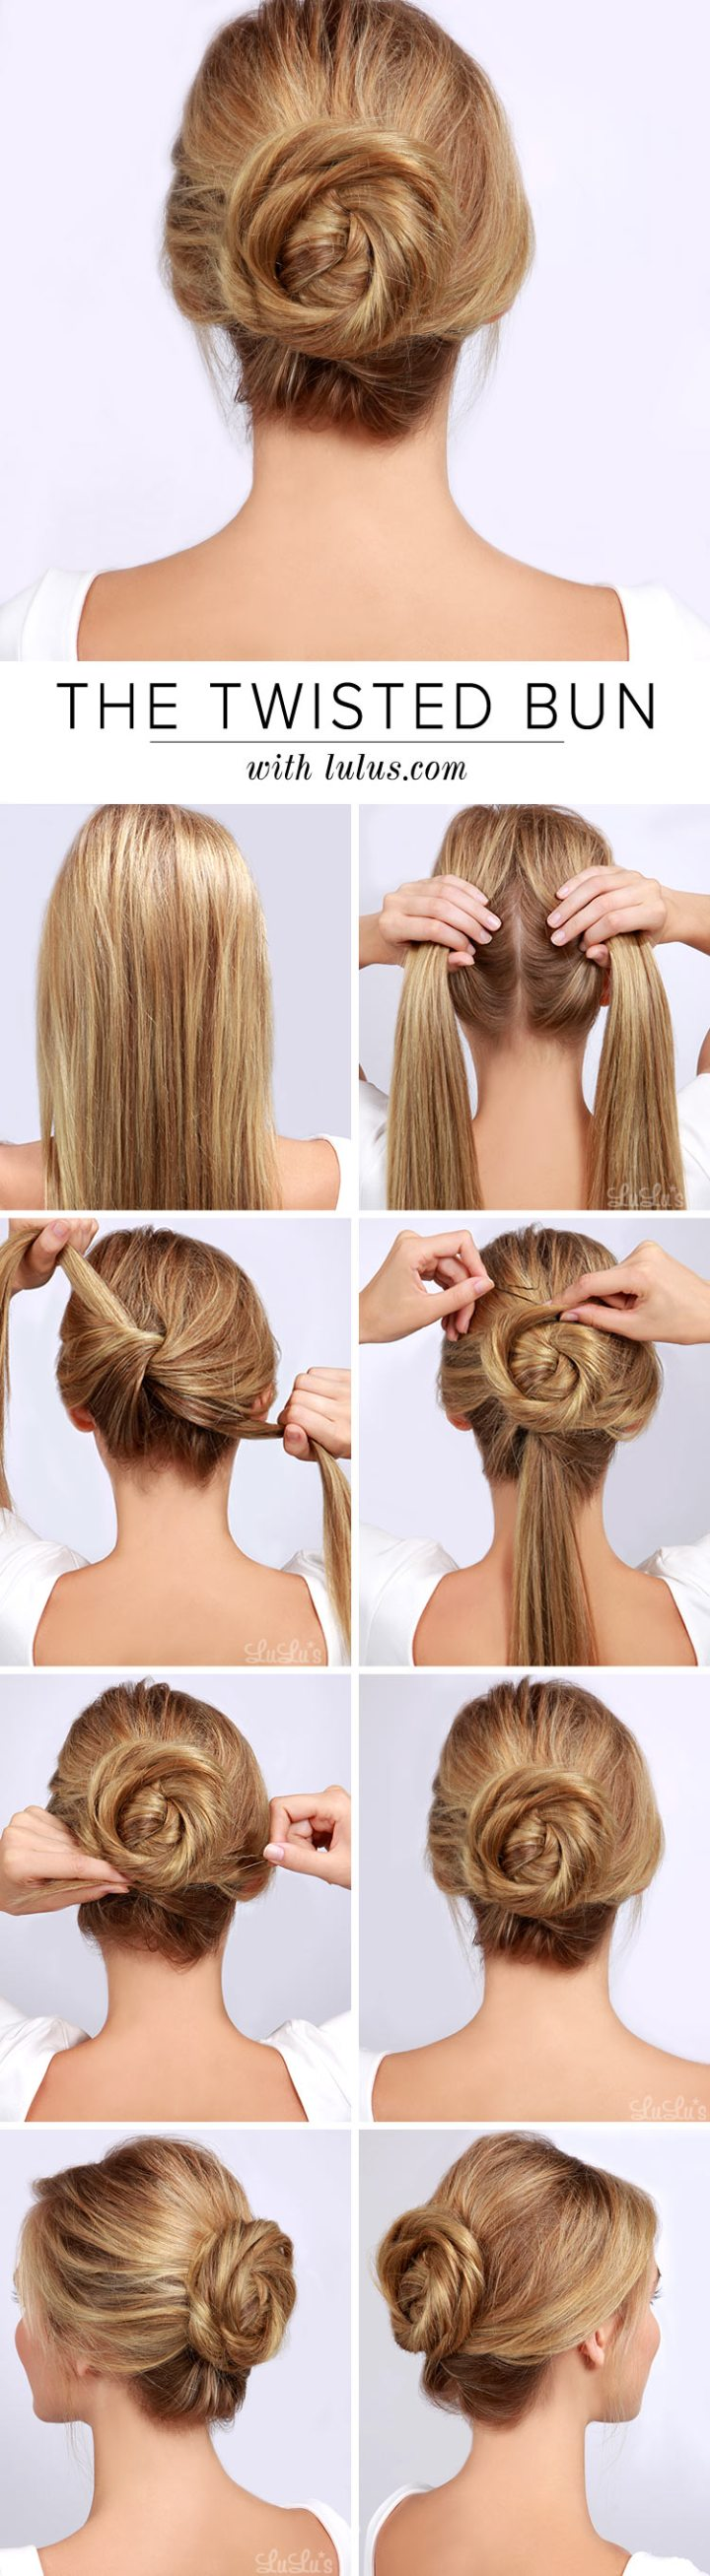 Best of hairstyles you can do yourself hairstyle ideas 15 elegant thanksgiving hairstyles you can easily do by yourself solutioingenieria Gallery